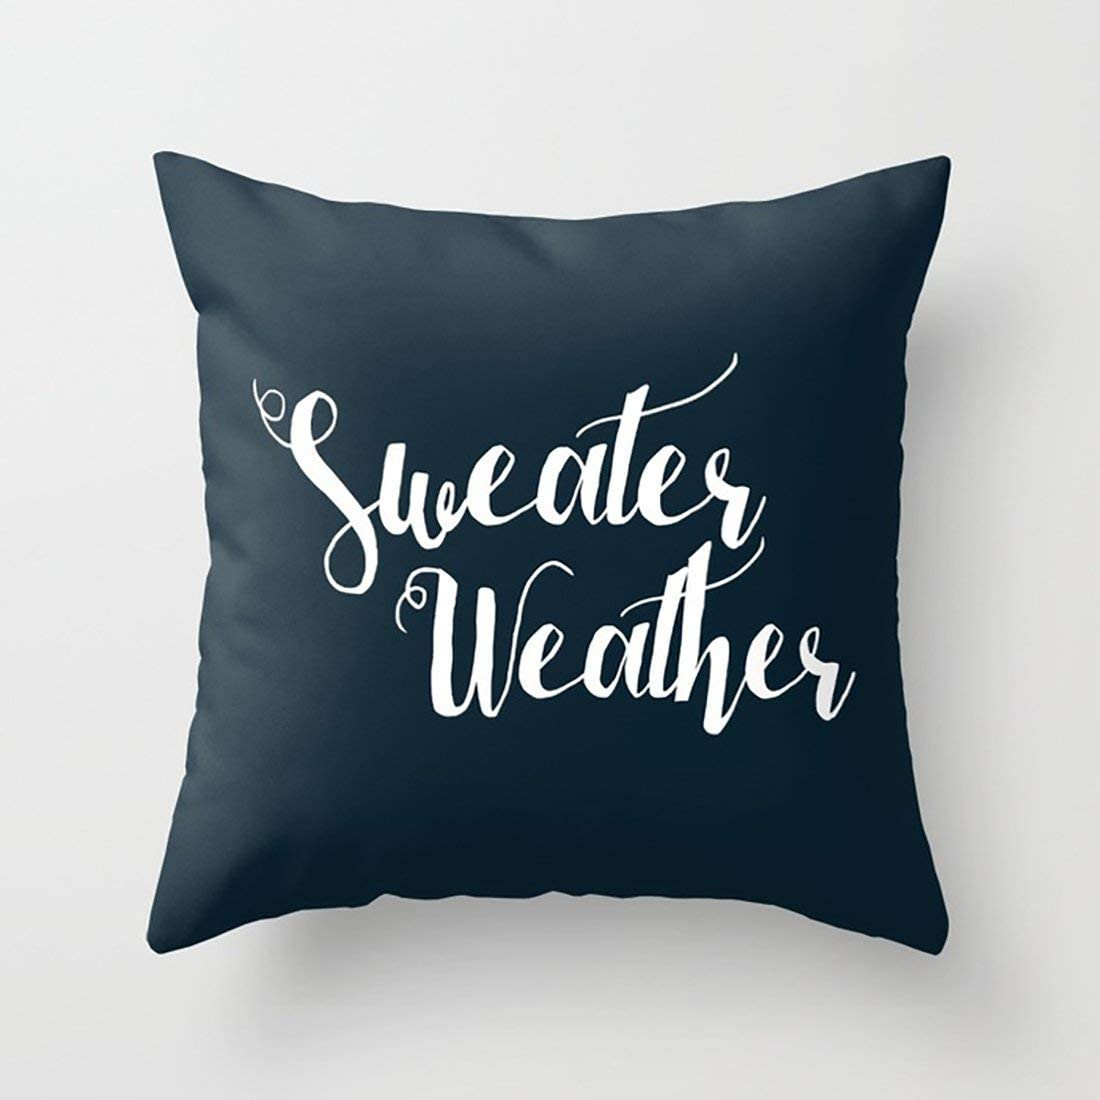 Rdsfhsp White Note Sweater Weather Black Cushion Throw Pillow Cover Case For Sofa Car Bedroom Etc Or Gifts Cotton 18x18 In Home Kitchen